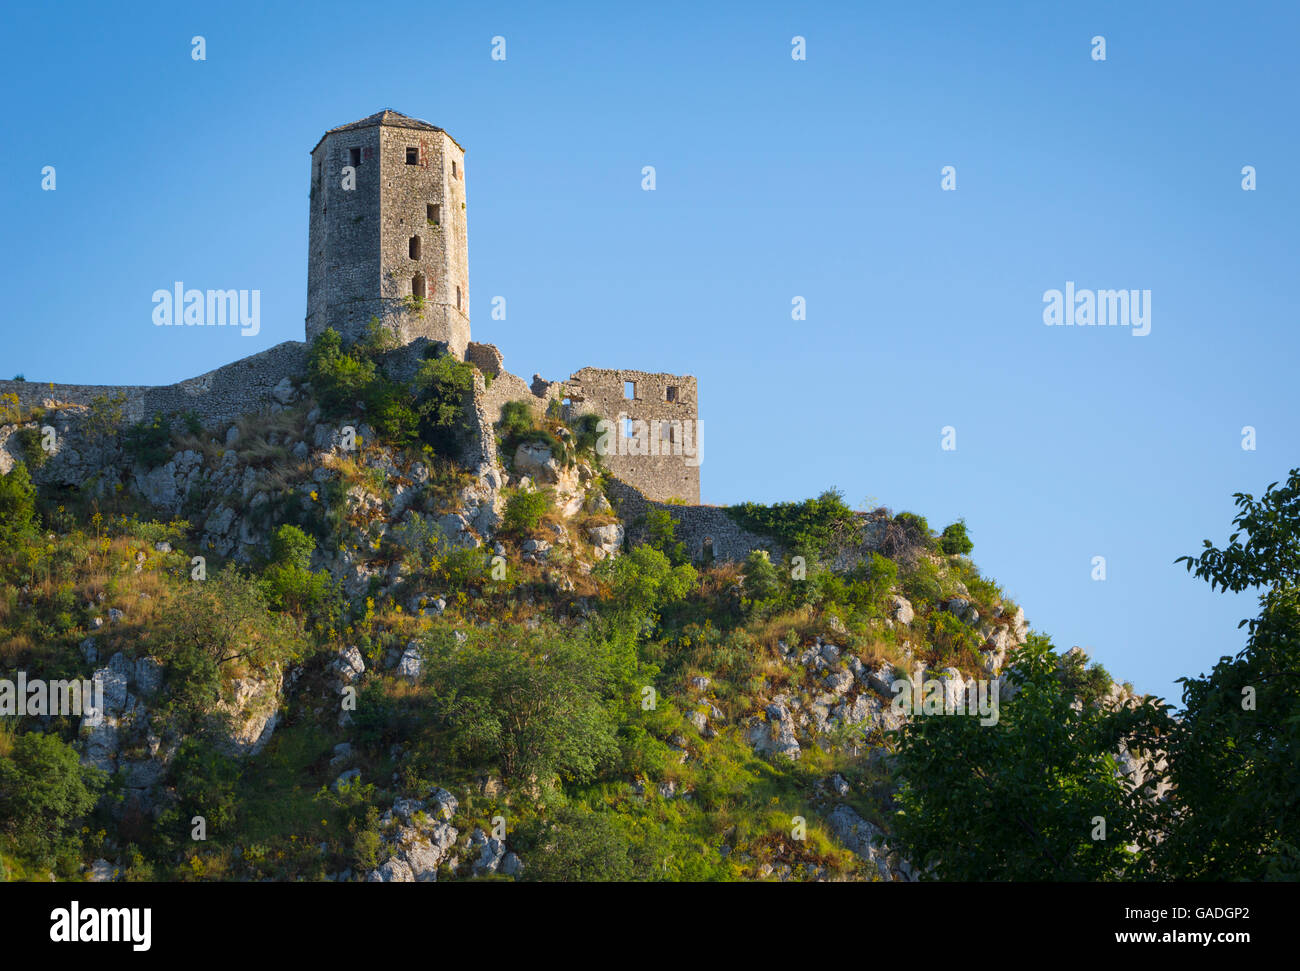 Pocitelj, Herzegovina-Neretva, Bosnia and Herzegovina. Citadel Pocitelj, the 14th century fortress. - Stock Image